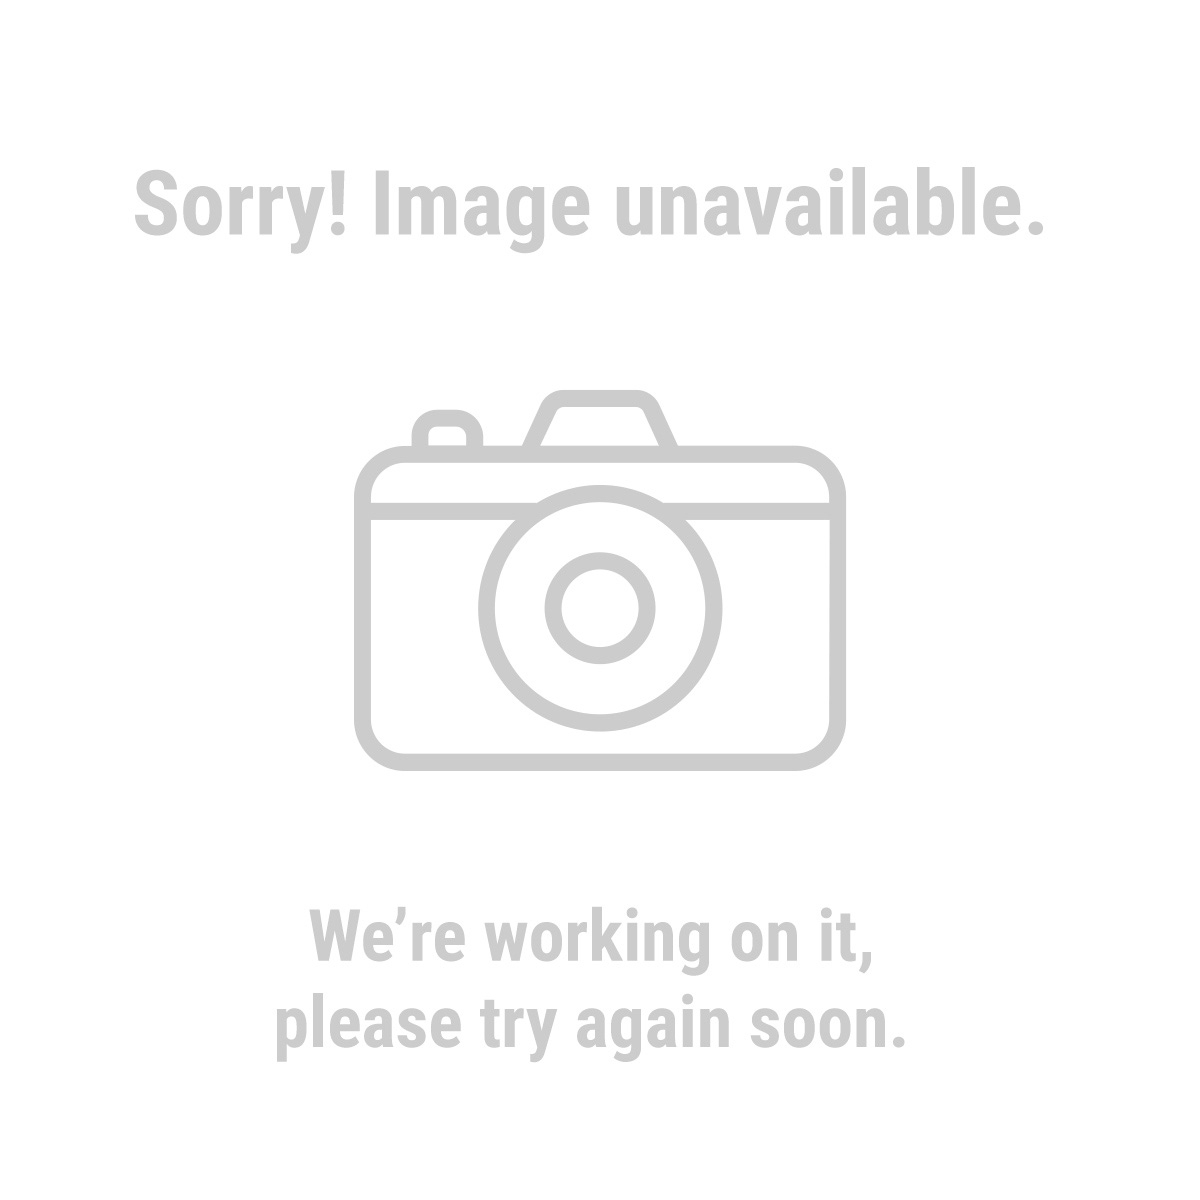 Gordon 69567 LED Worklight/Flashlight,  27 LED Portable